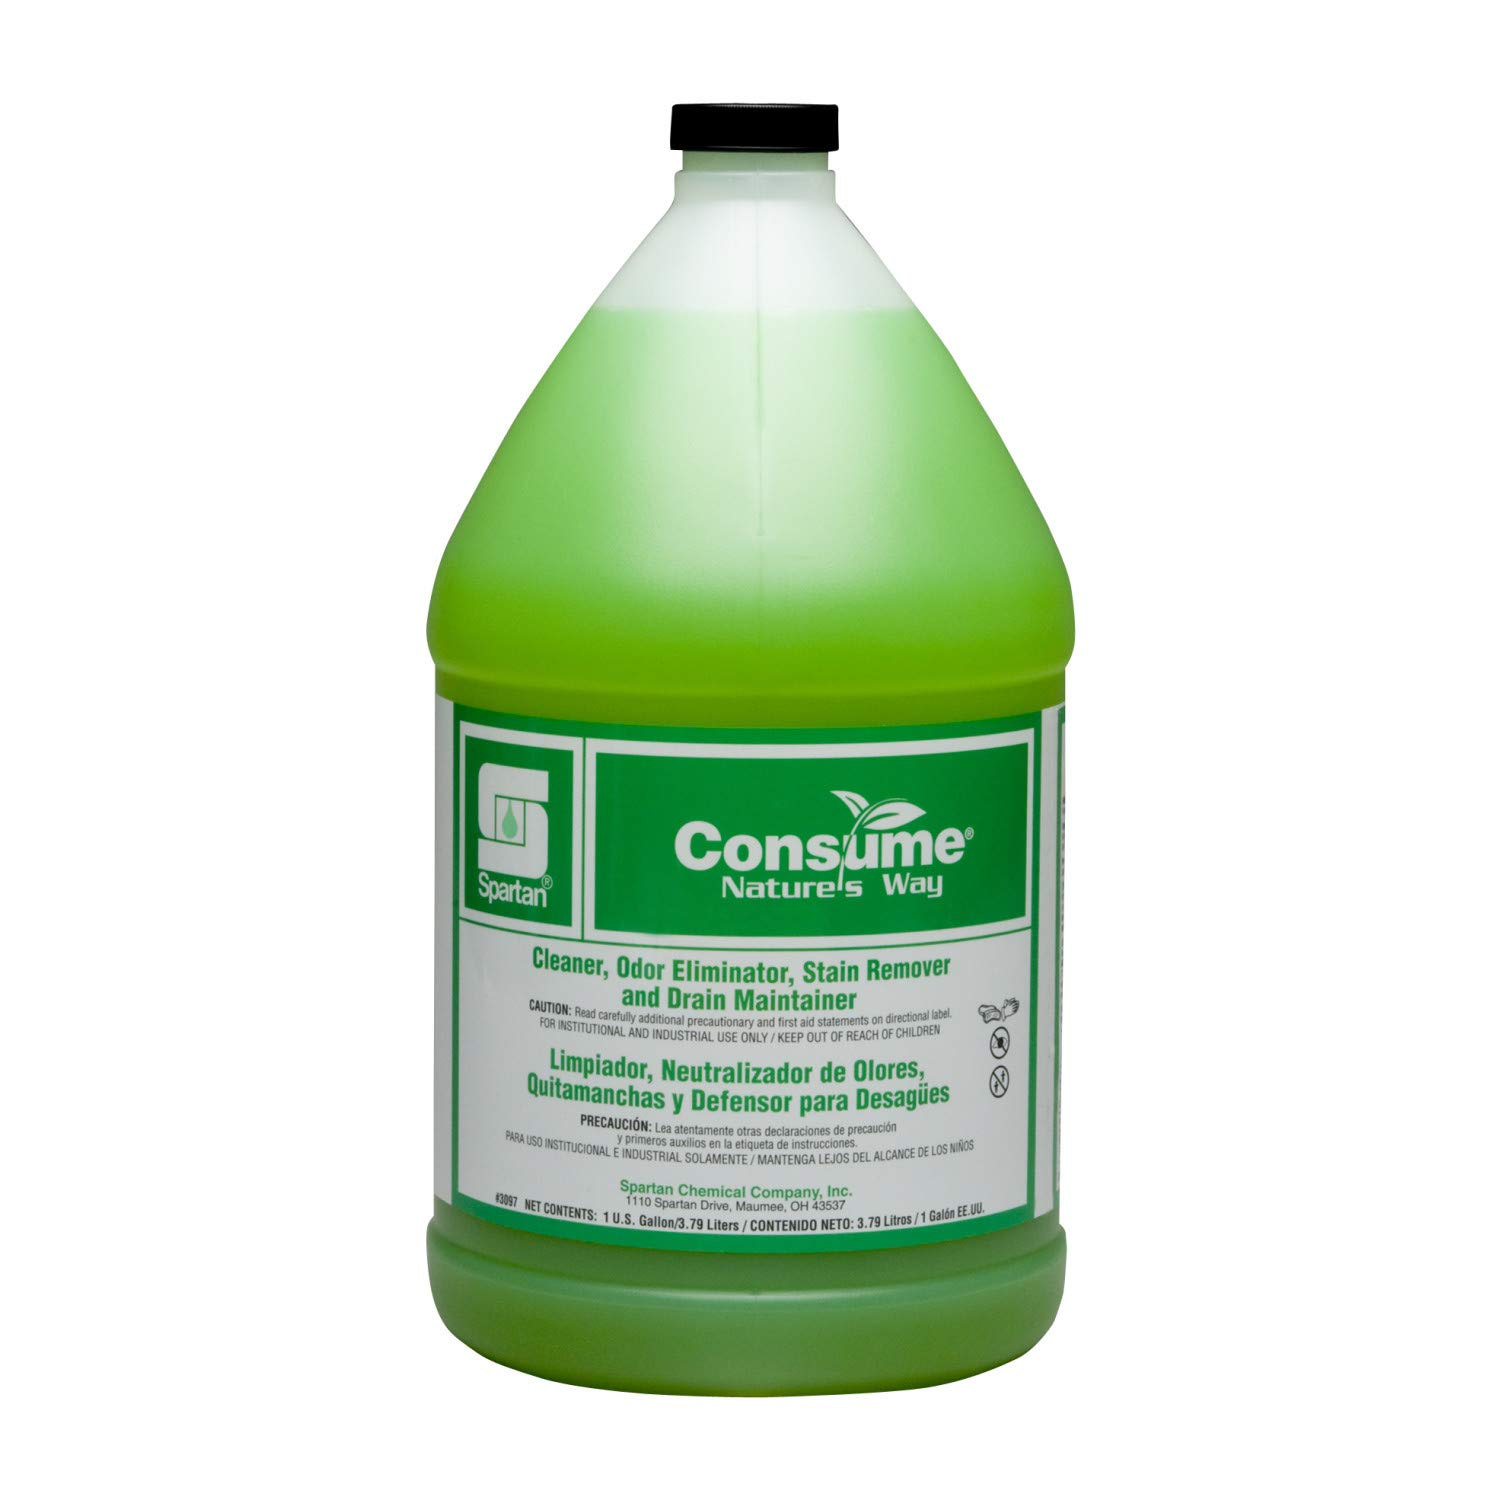 Consume Consume Nature's Way # 309704, 4 gal per cs -(1 CASE) by Spartan Chemical Co.